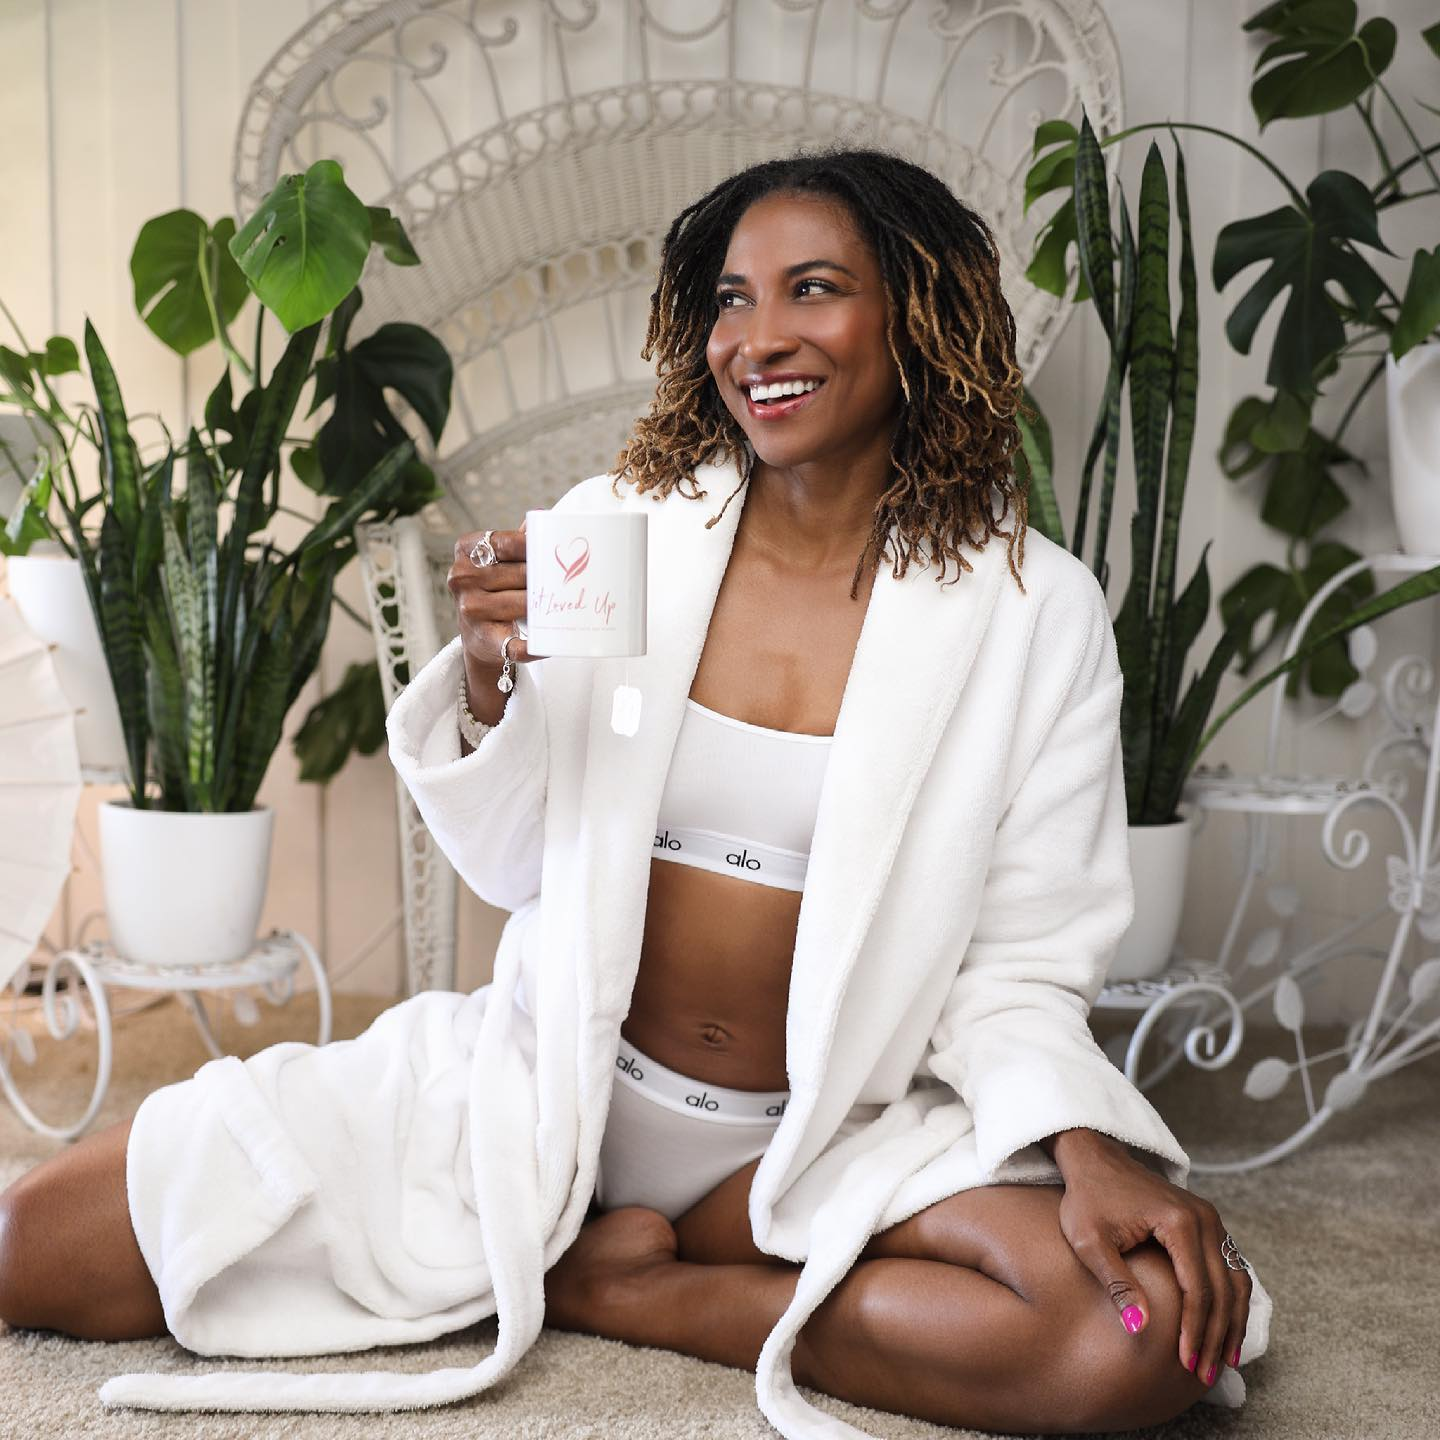 @koyawebb drinking her morning tea while wearing the Alo Icon Bra Cami and matching undies topped with a comfy white robe.